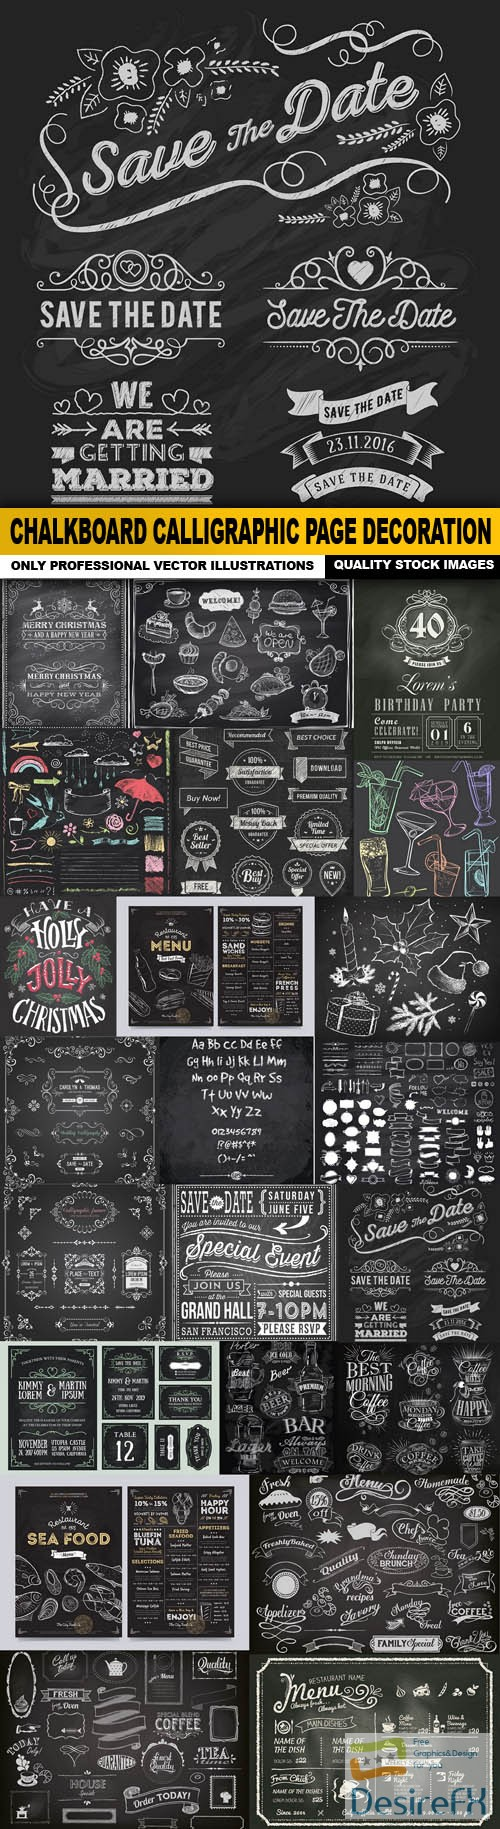 stock-vectors - Chalkboard Calligraphic Page Decoration - 22 Vector